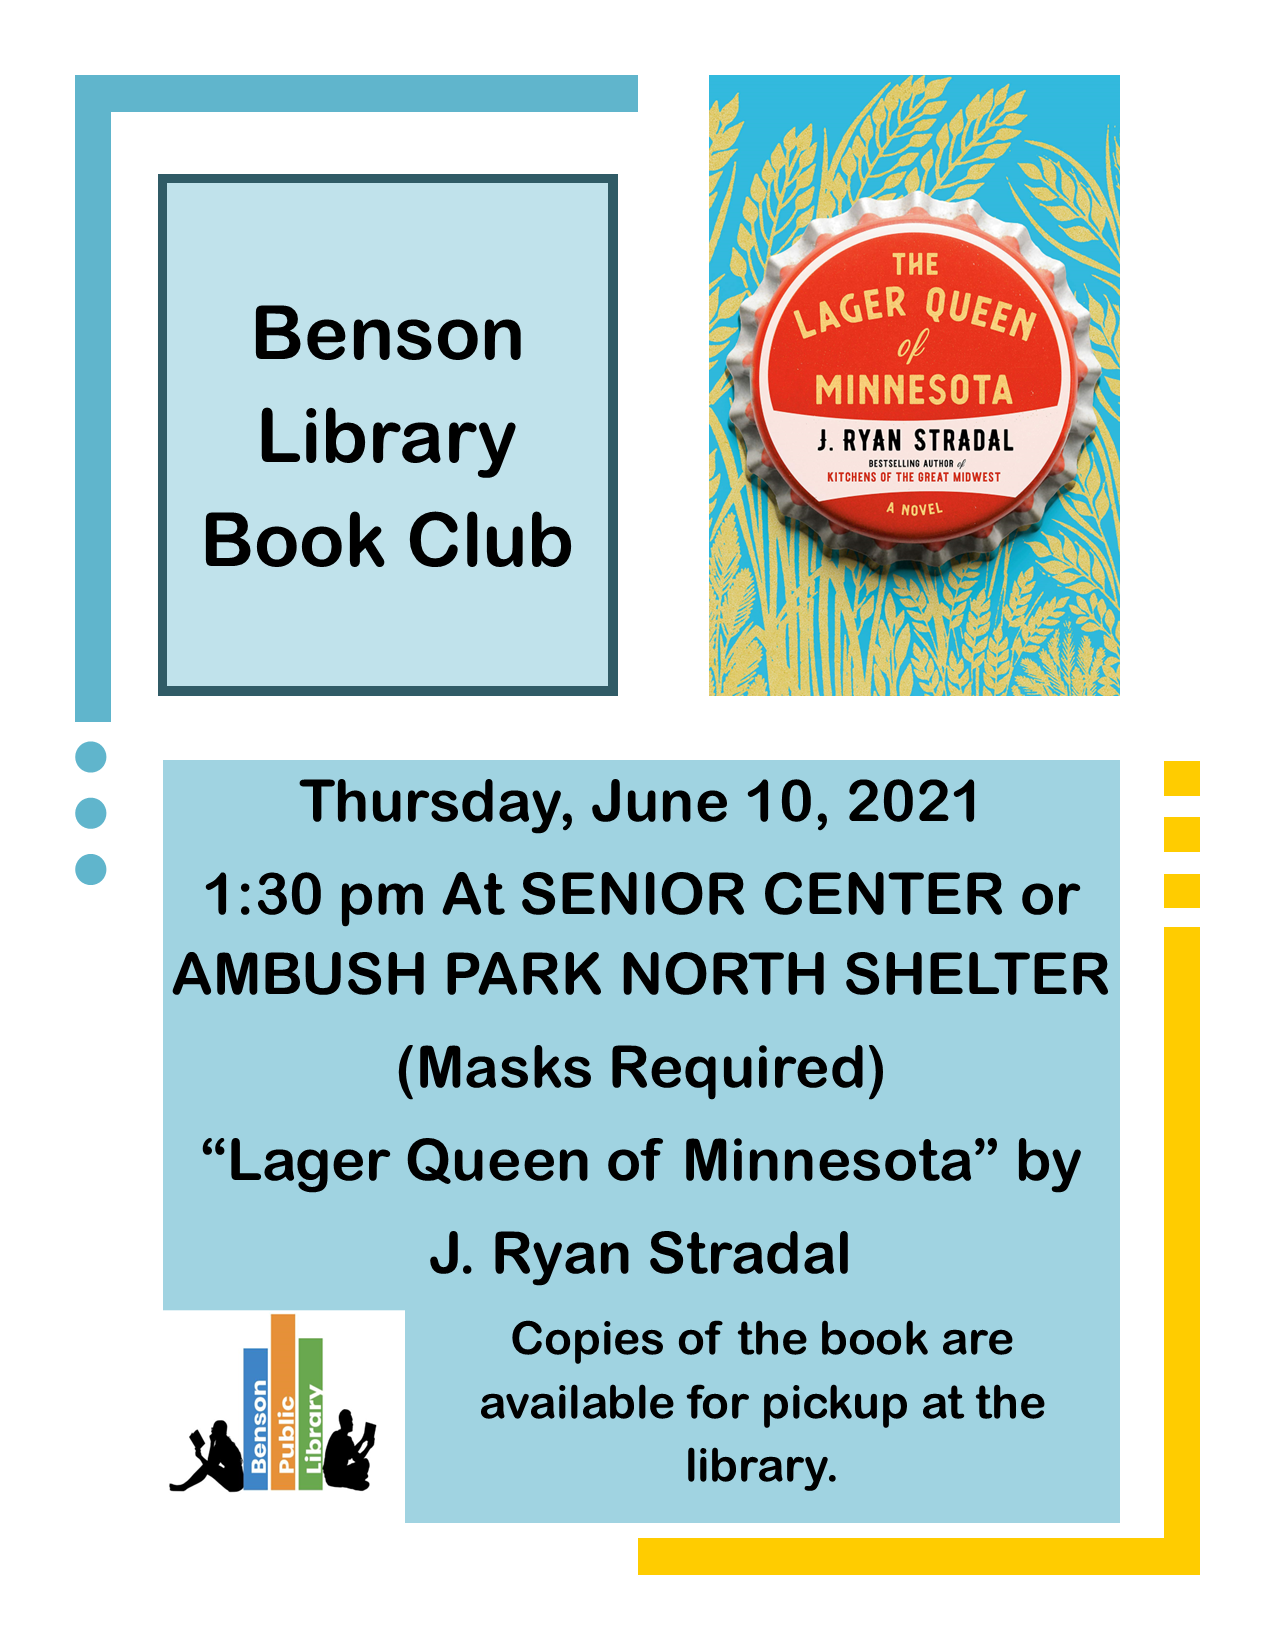 Join us on Thursday, June 10th at 1:30 pm at either the North Shelter of Ambush Park or the Senior Center. The book this month is 'The Lager Queen of Minnesota' by J. Ryan Stradal. Copies are available for pickup at the library.